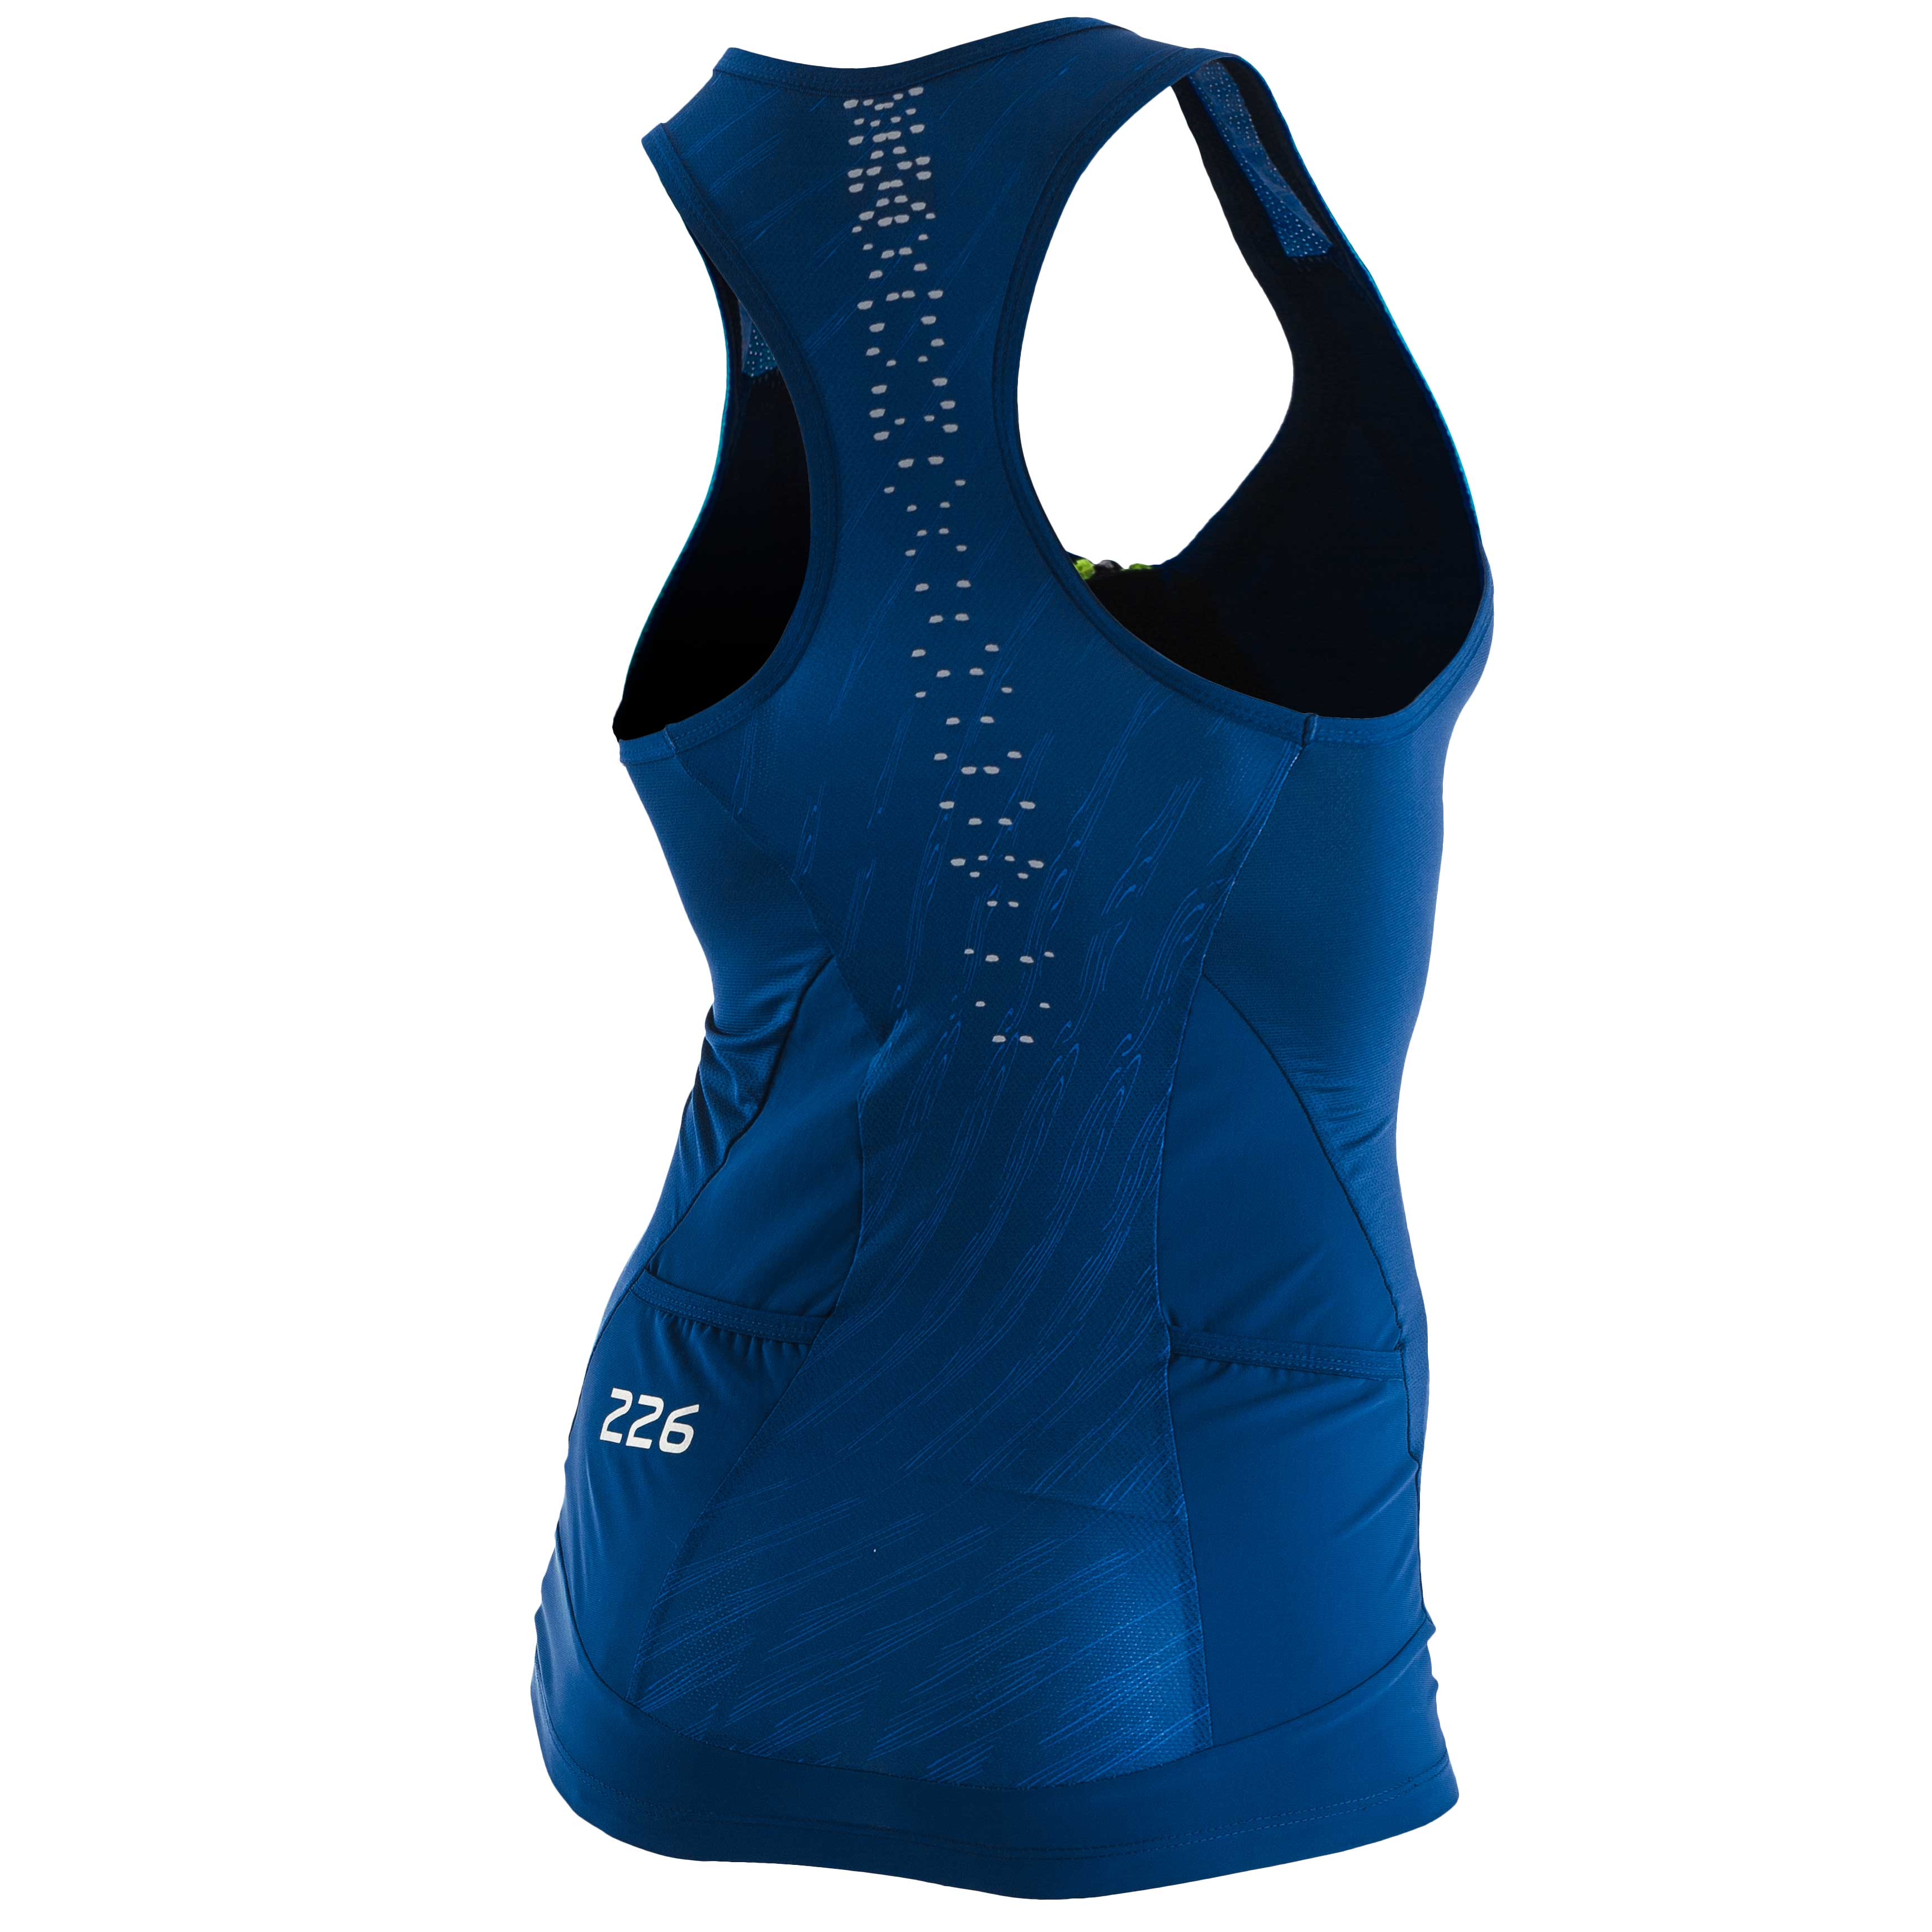 Orca Women's 226 Perform Tri Singlet